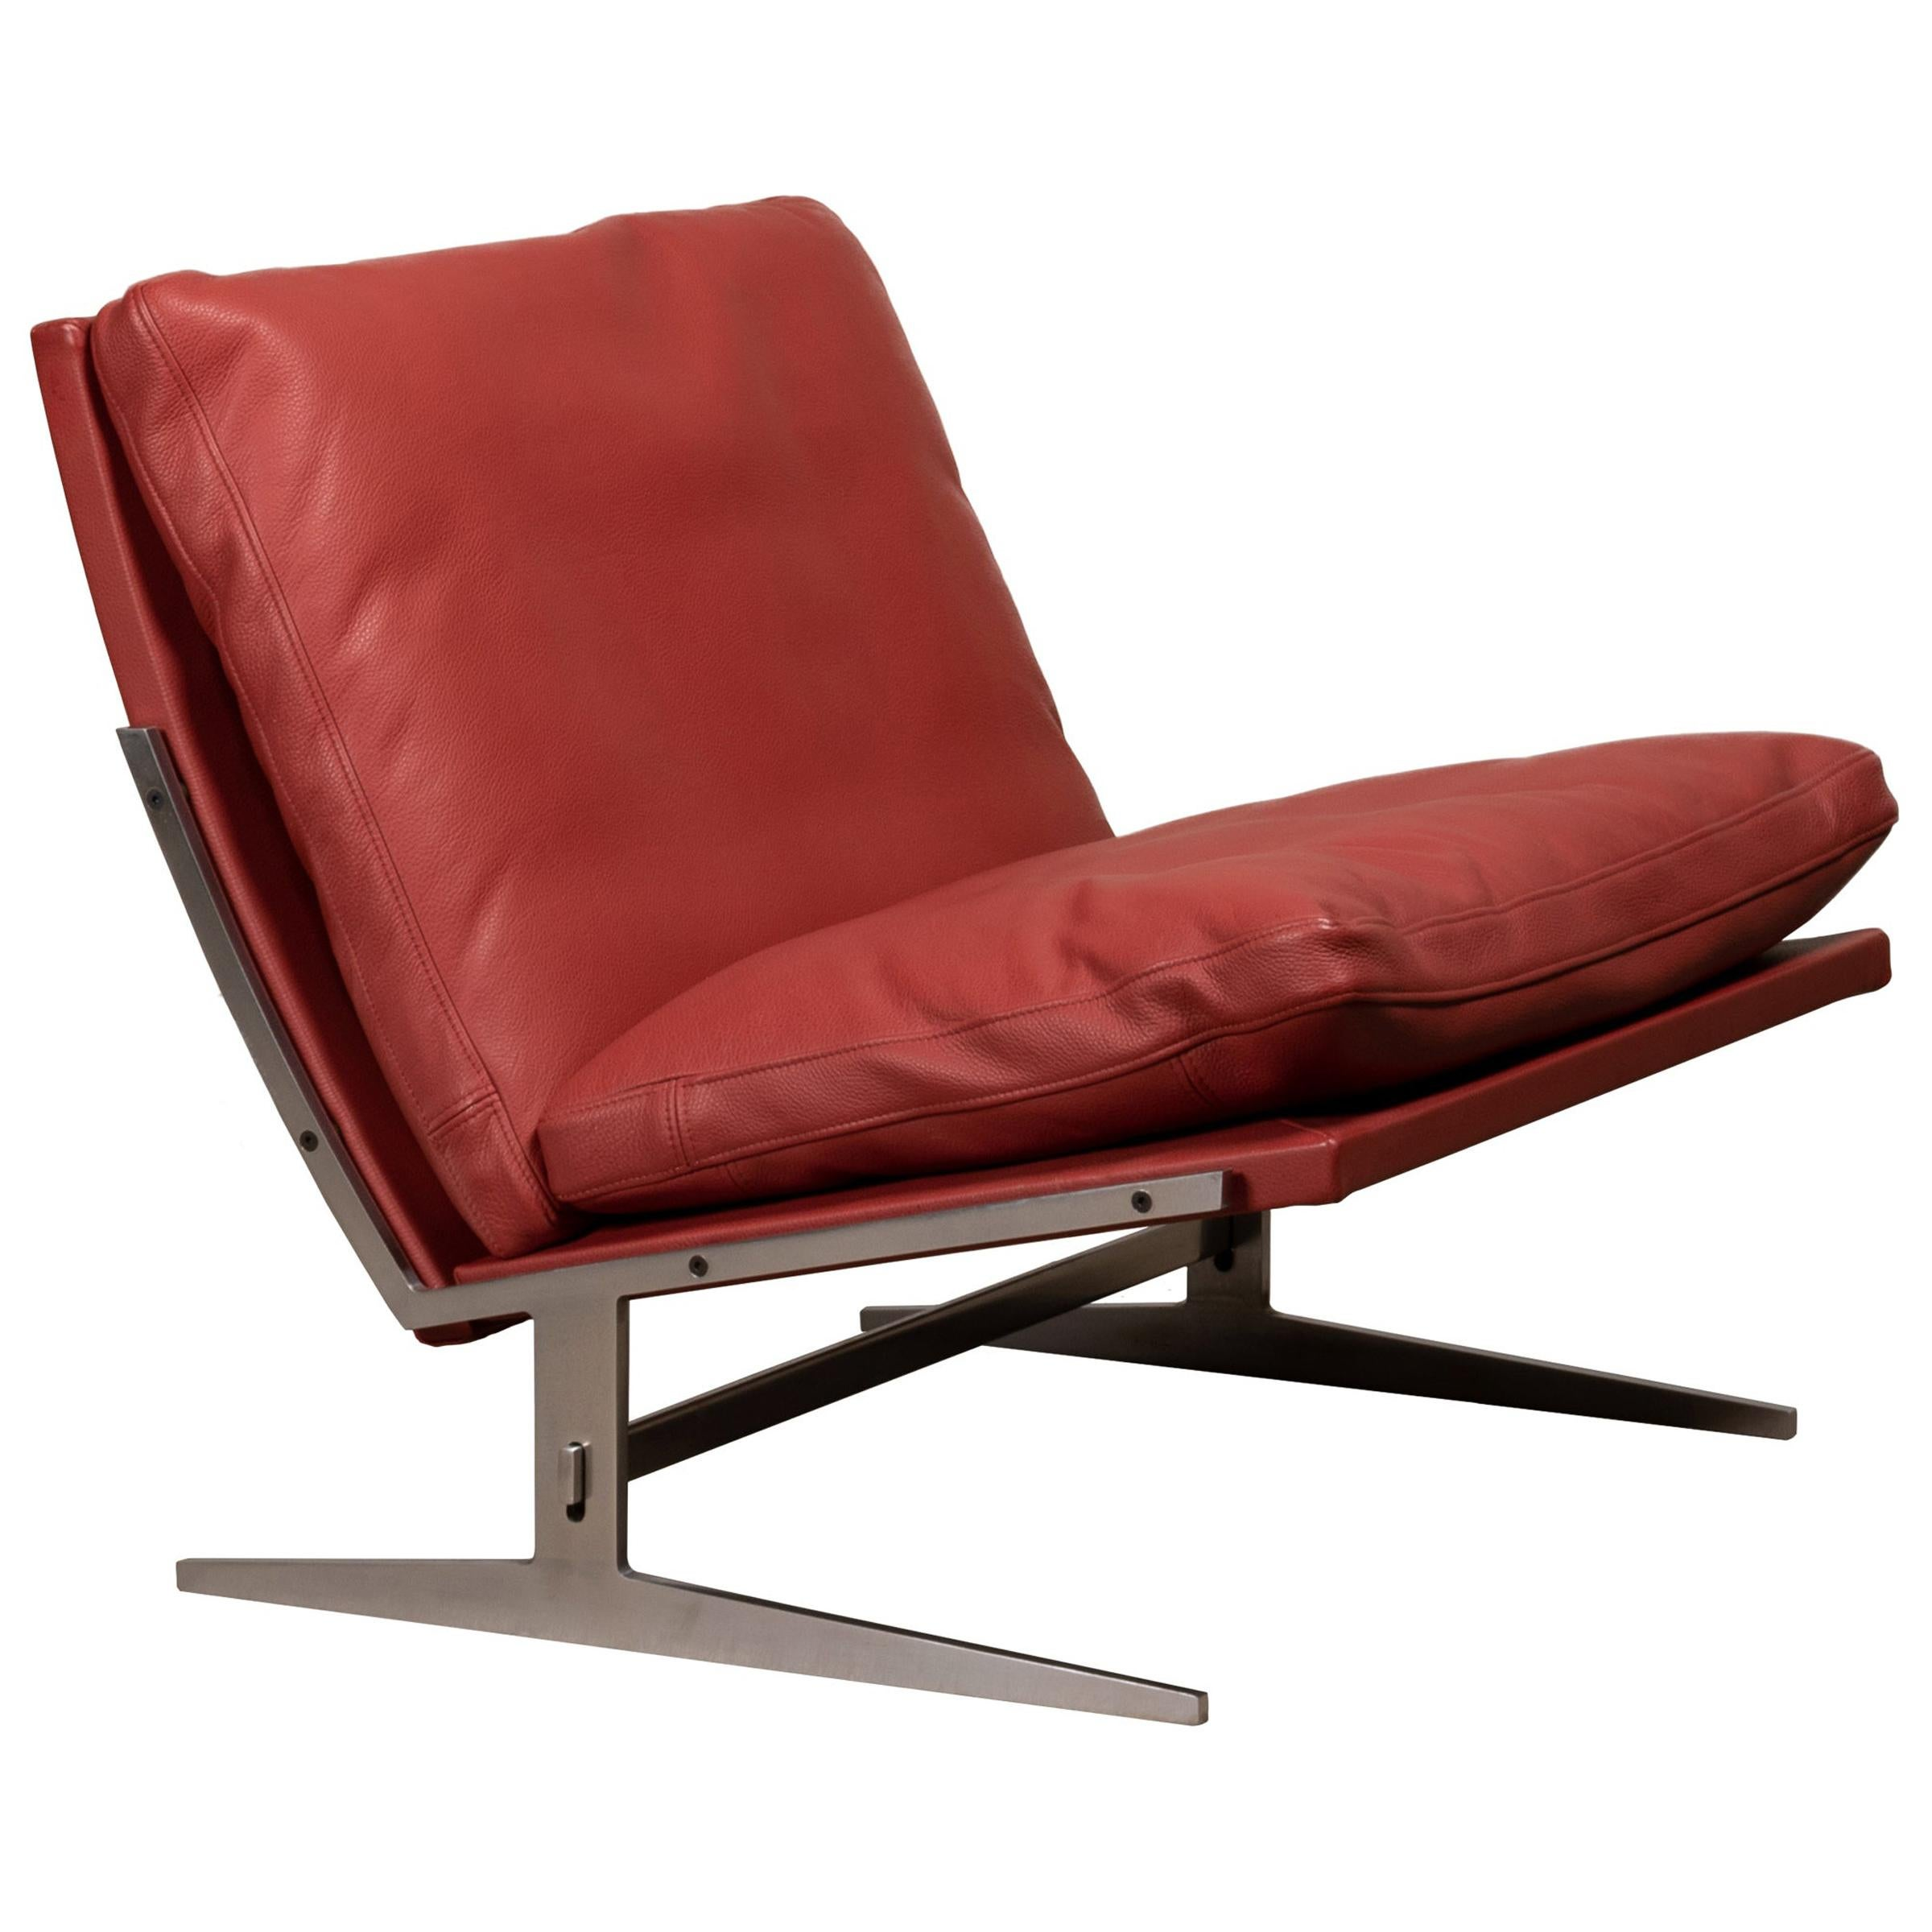 Kastholm & Fabricius BO-561 Lounge Chair in Ruby Red Leather by Bo-Ex Denmark